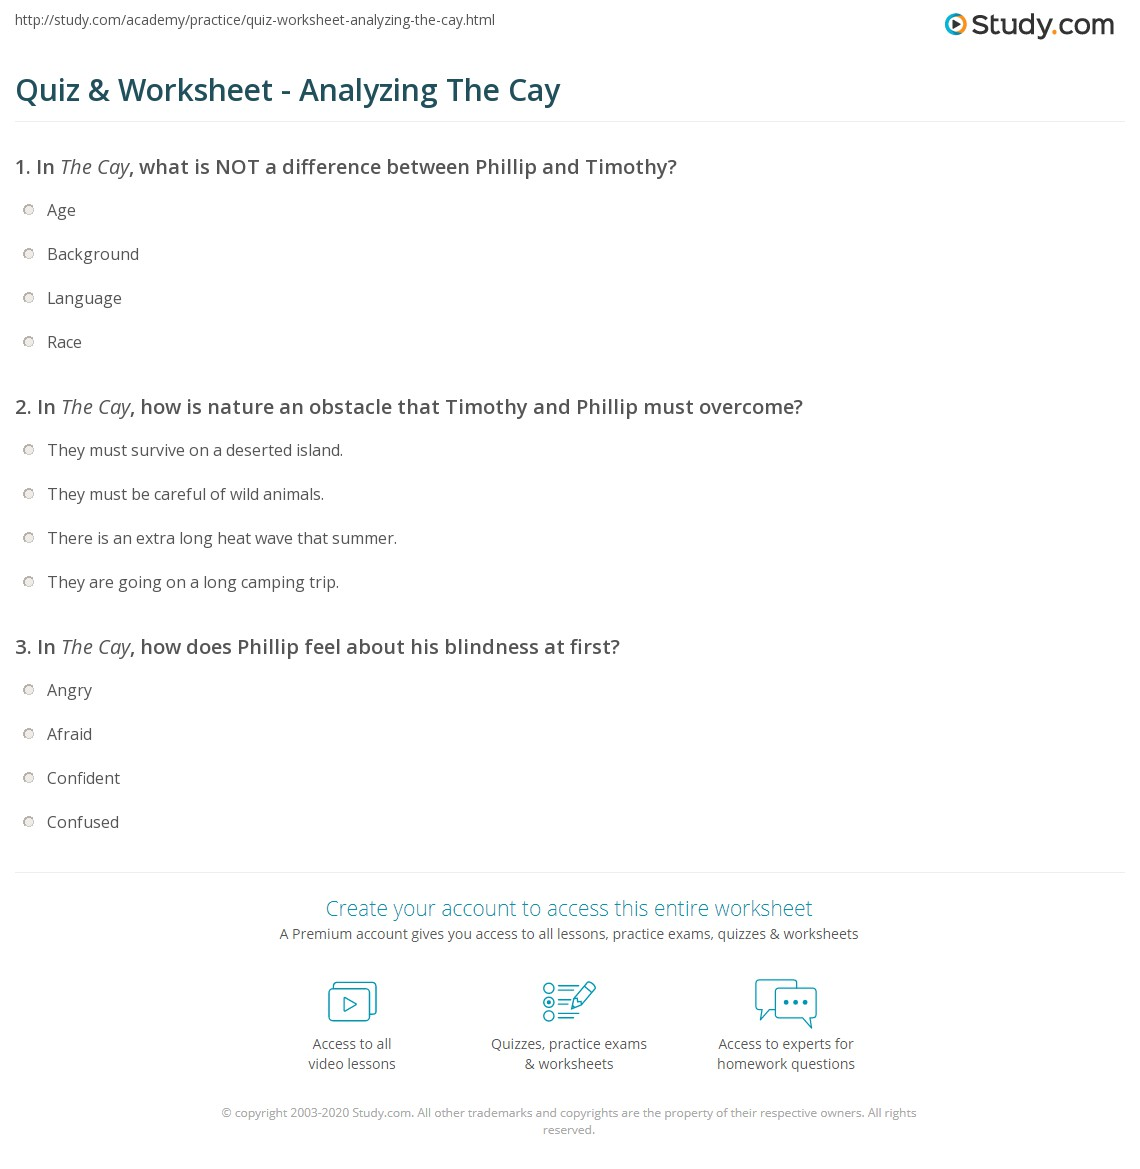 The Cay Theme Worksheet Printable Worksheets And Activities For Teachers Parents Tutors And Homeschool Families High quality reading comprehension worksheets for all ages and ability levels. indymoves org